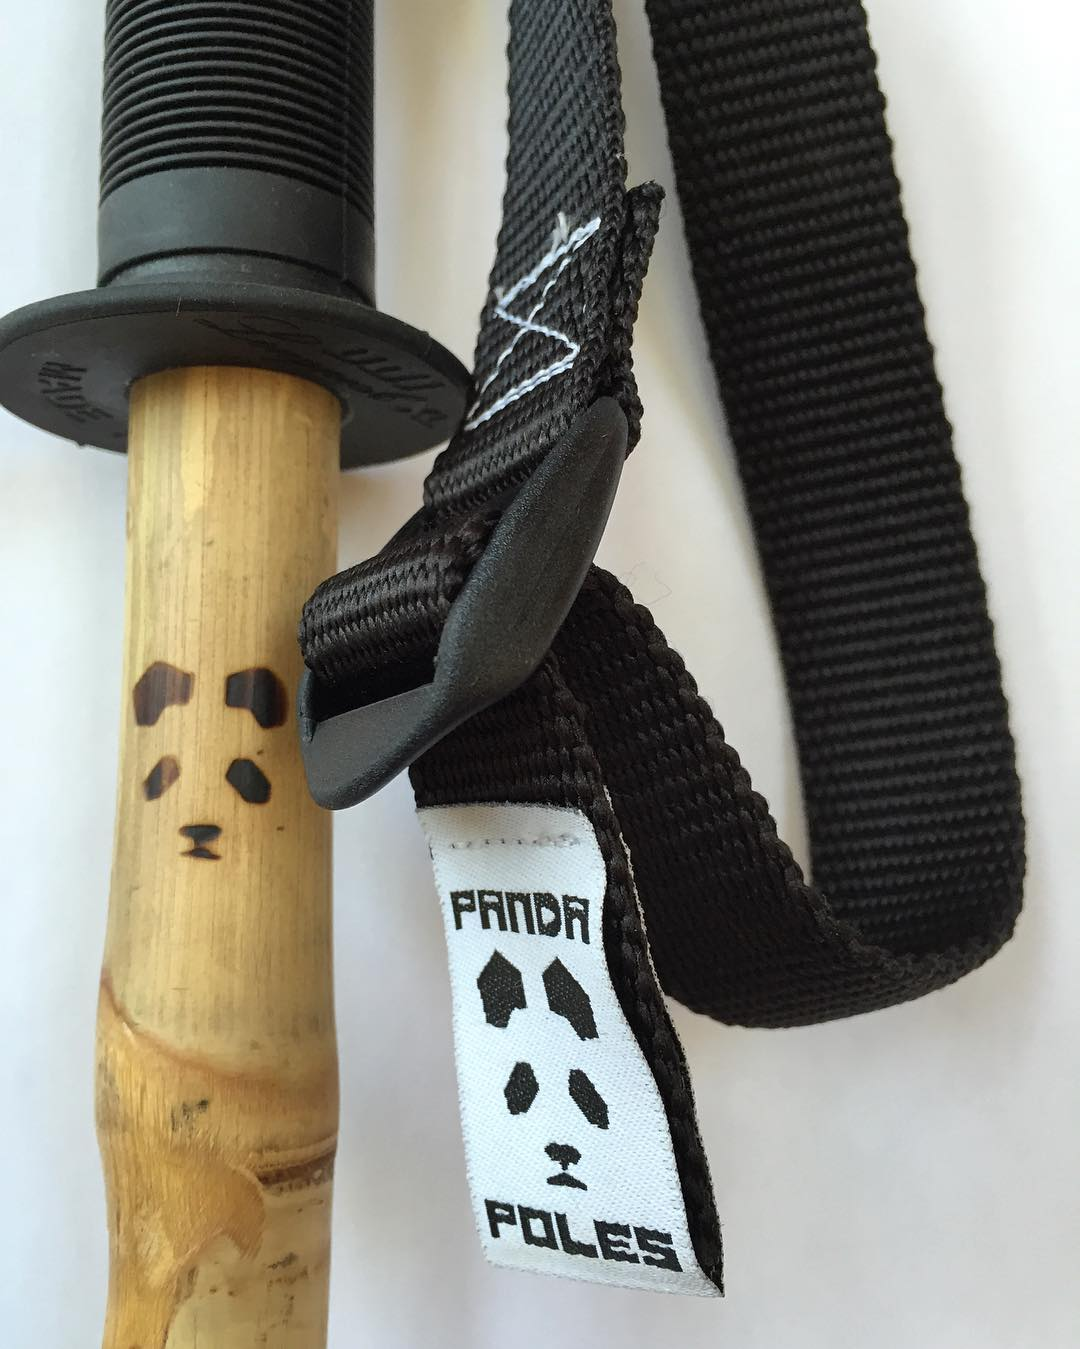 We've been busy updating the website with new straps, baskets, grips, and more! We also created a mobile friendly version of our store, so now you can surf your favorite Panda products on one hand, while you pick your nose with the other! There are...